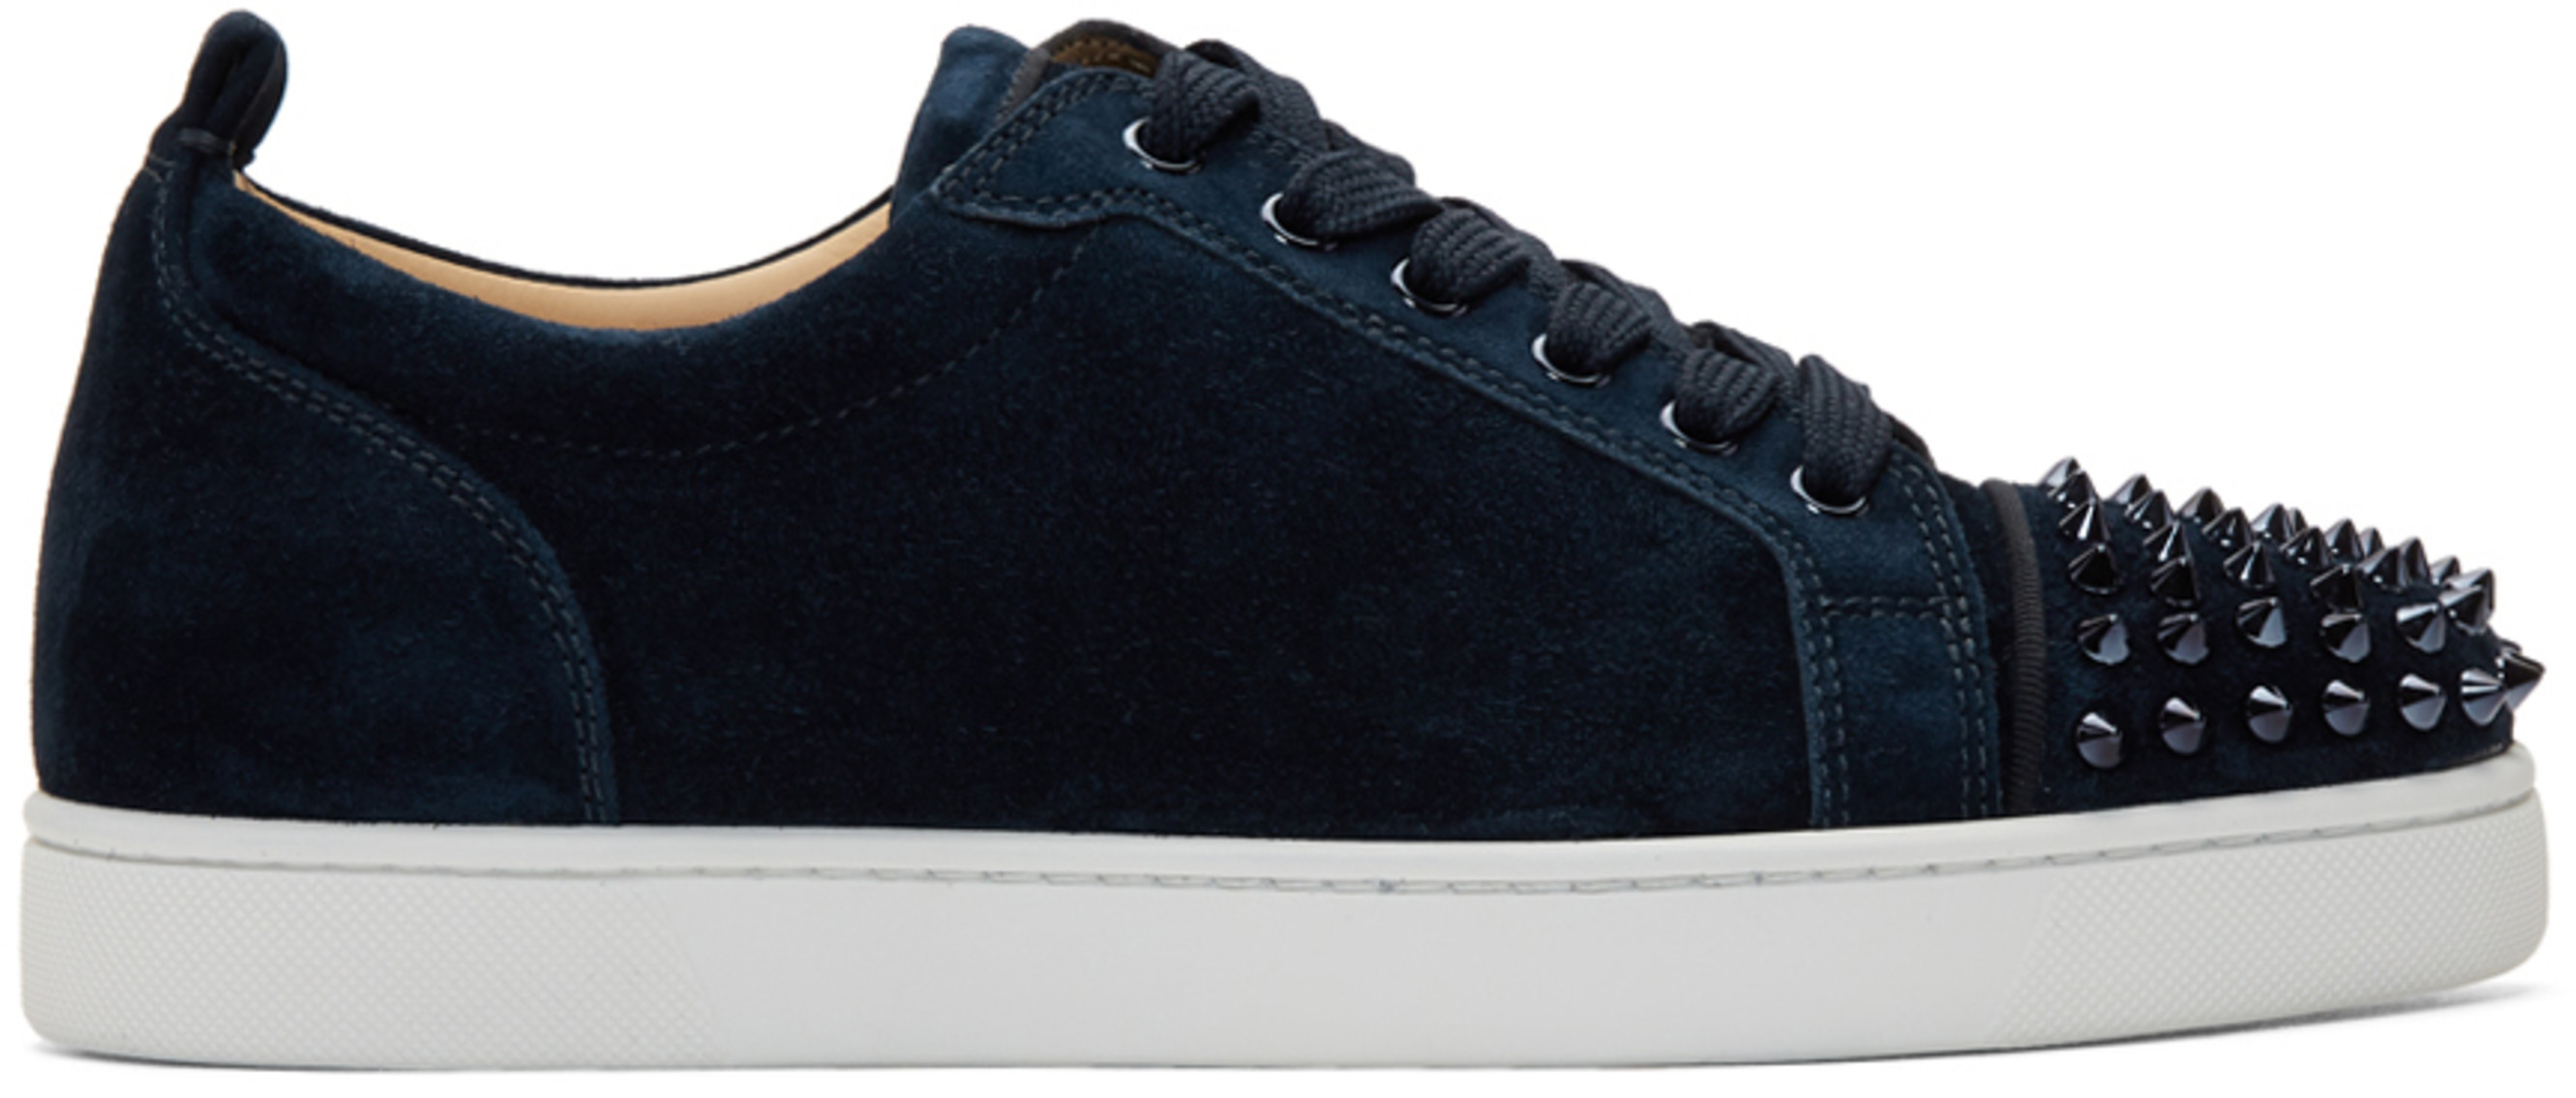 437a50d27f60 Christian Louboutin for Men SS19 Collection